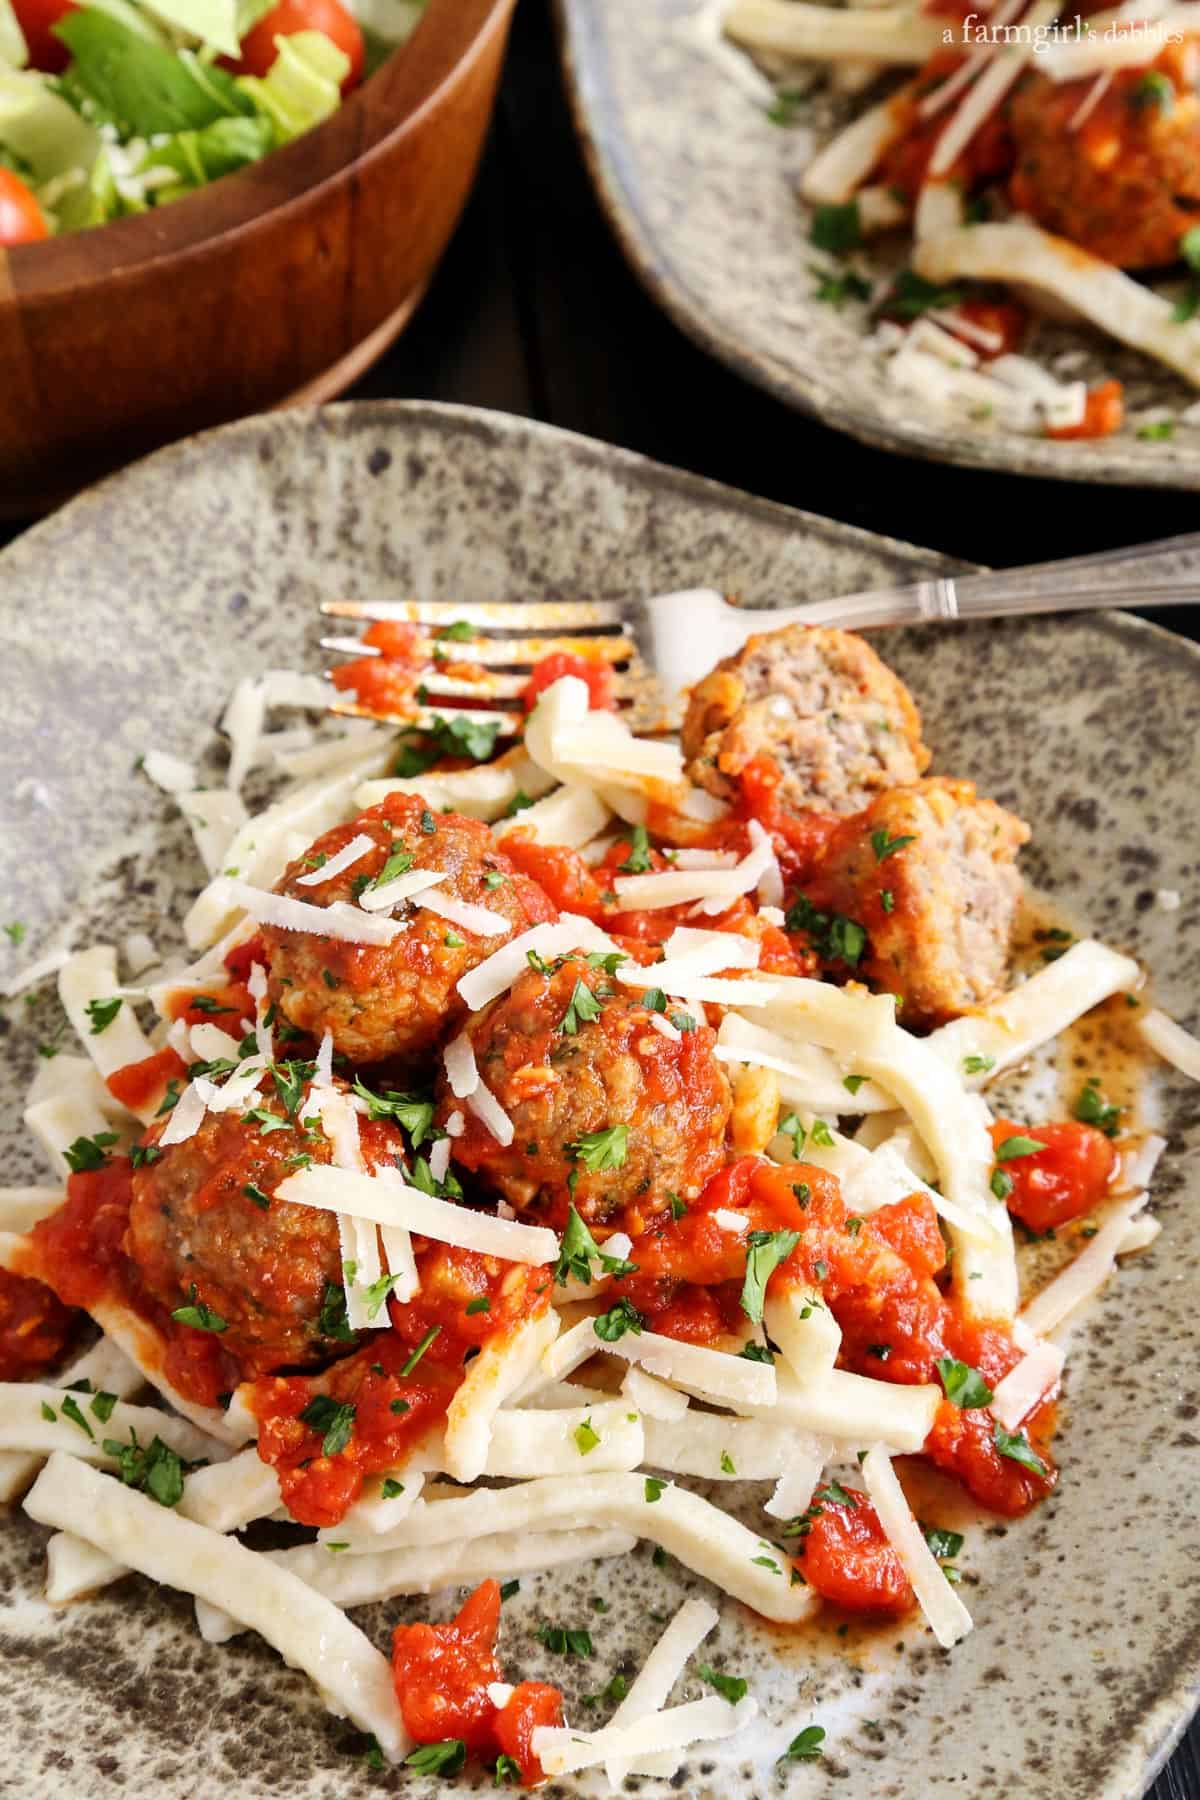 Spicy Italian Sausage Meatballs over Egg Noodles from afarmgirlsdabbles.com